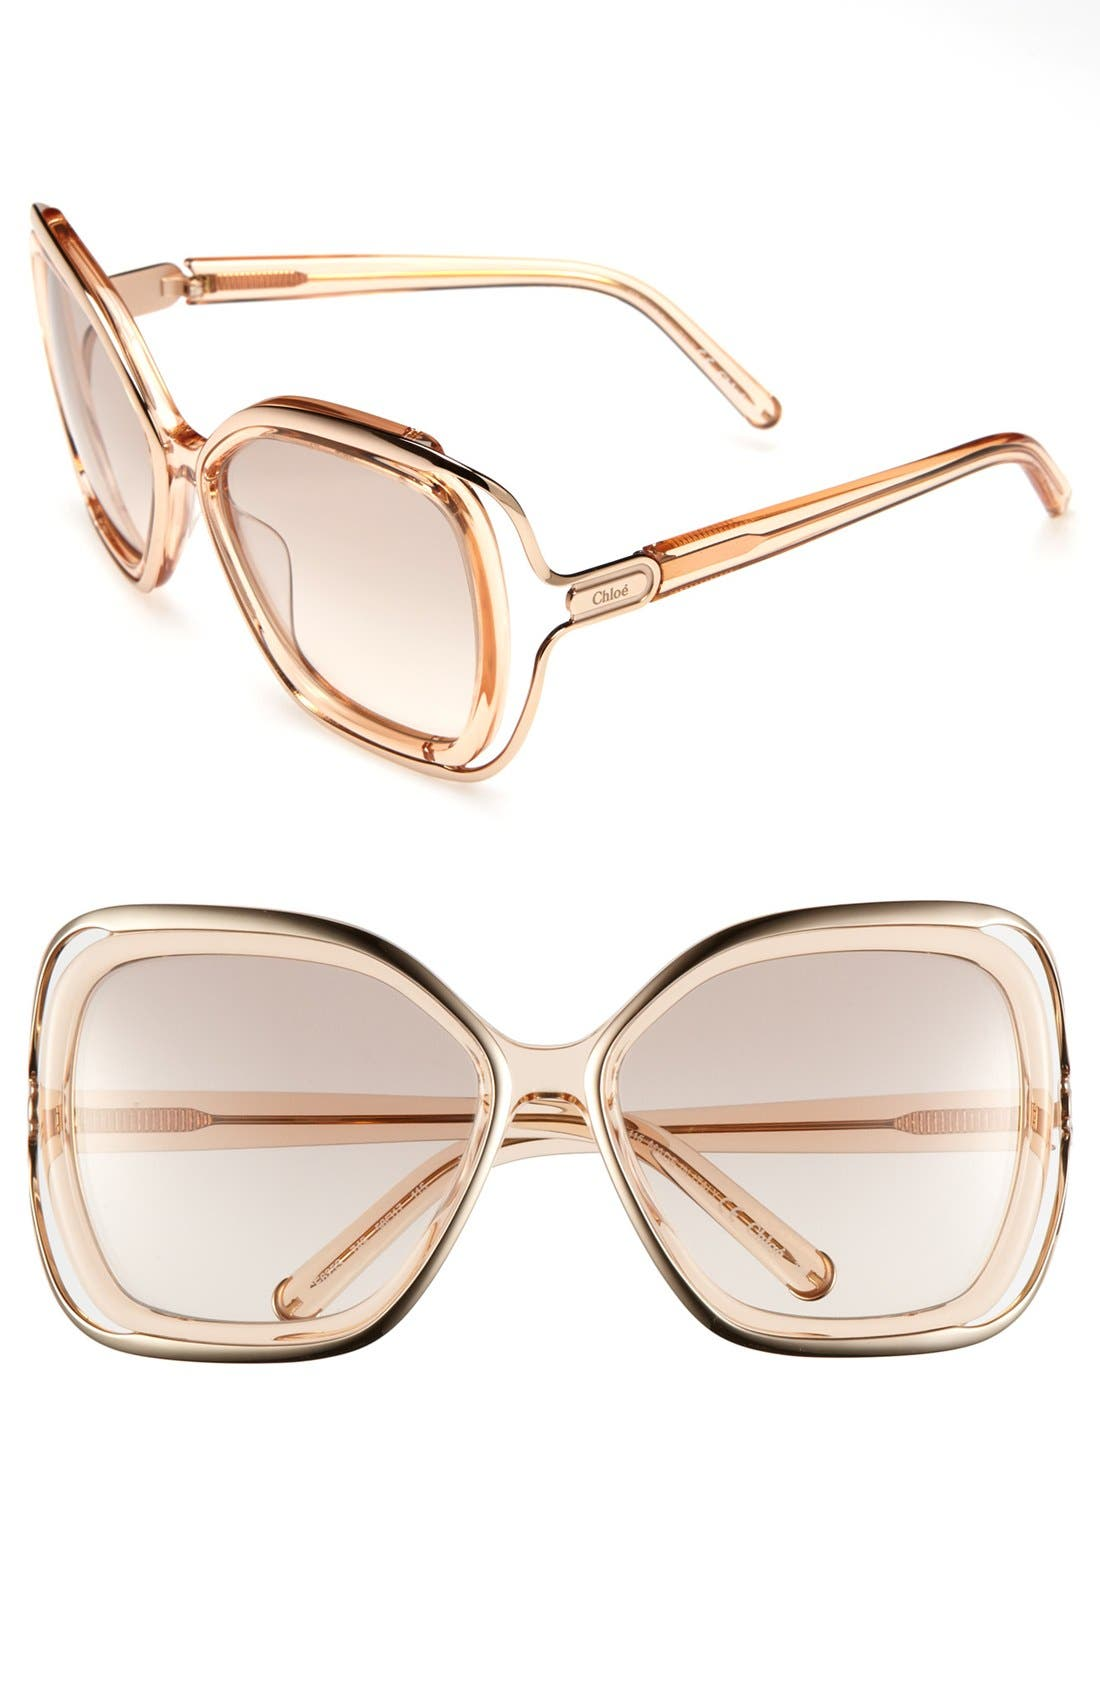 Alternate Image 1 Selected - Chloé 56mm Sunglasses